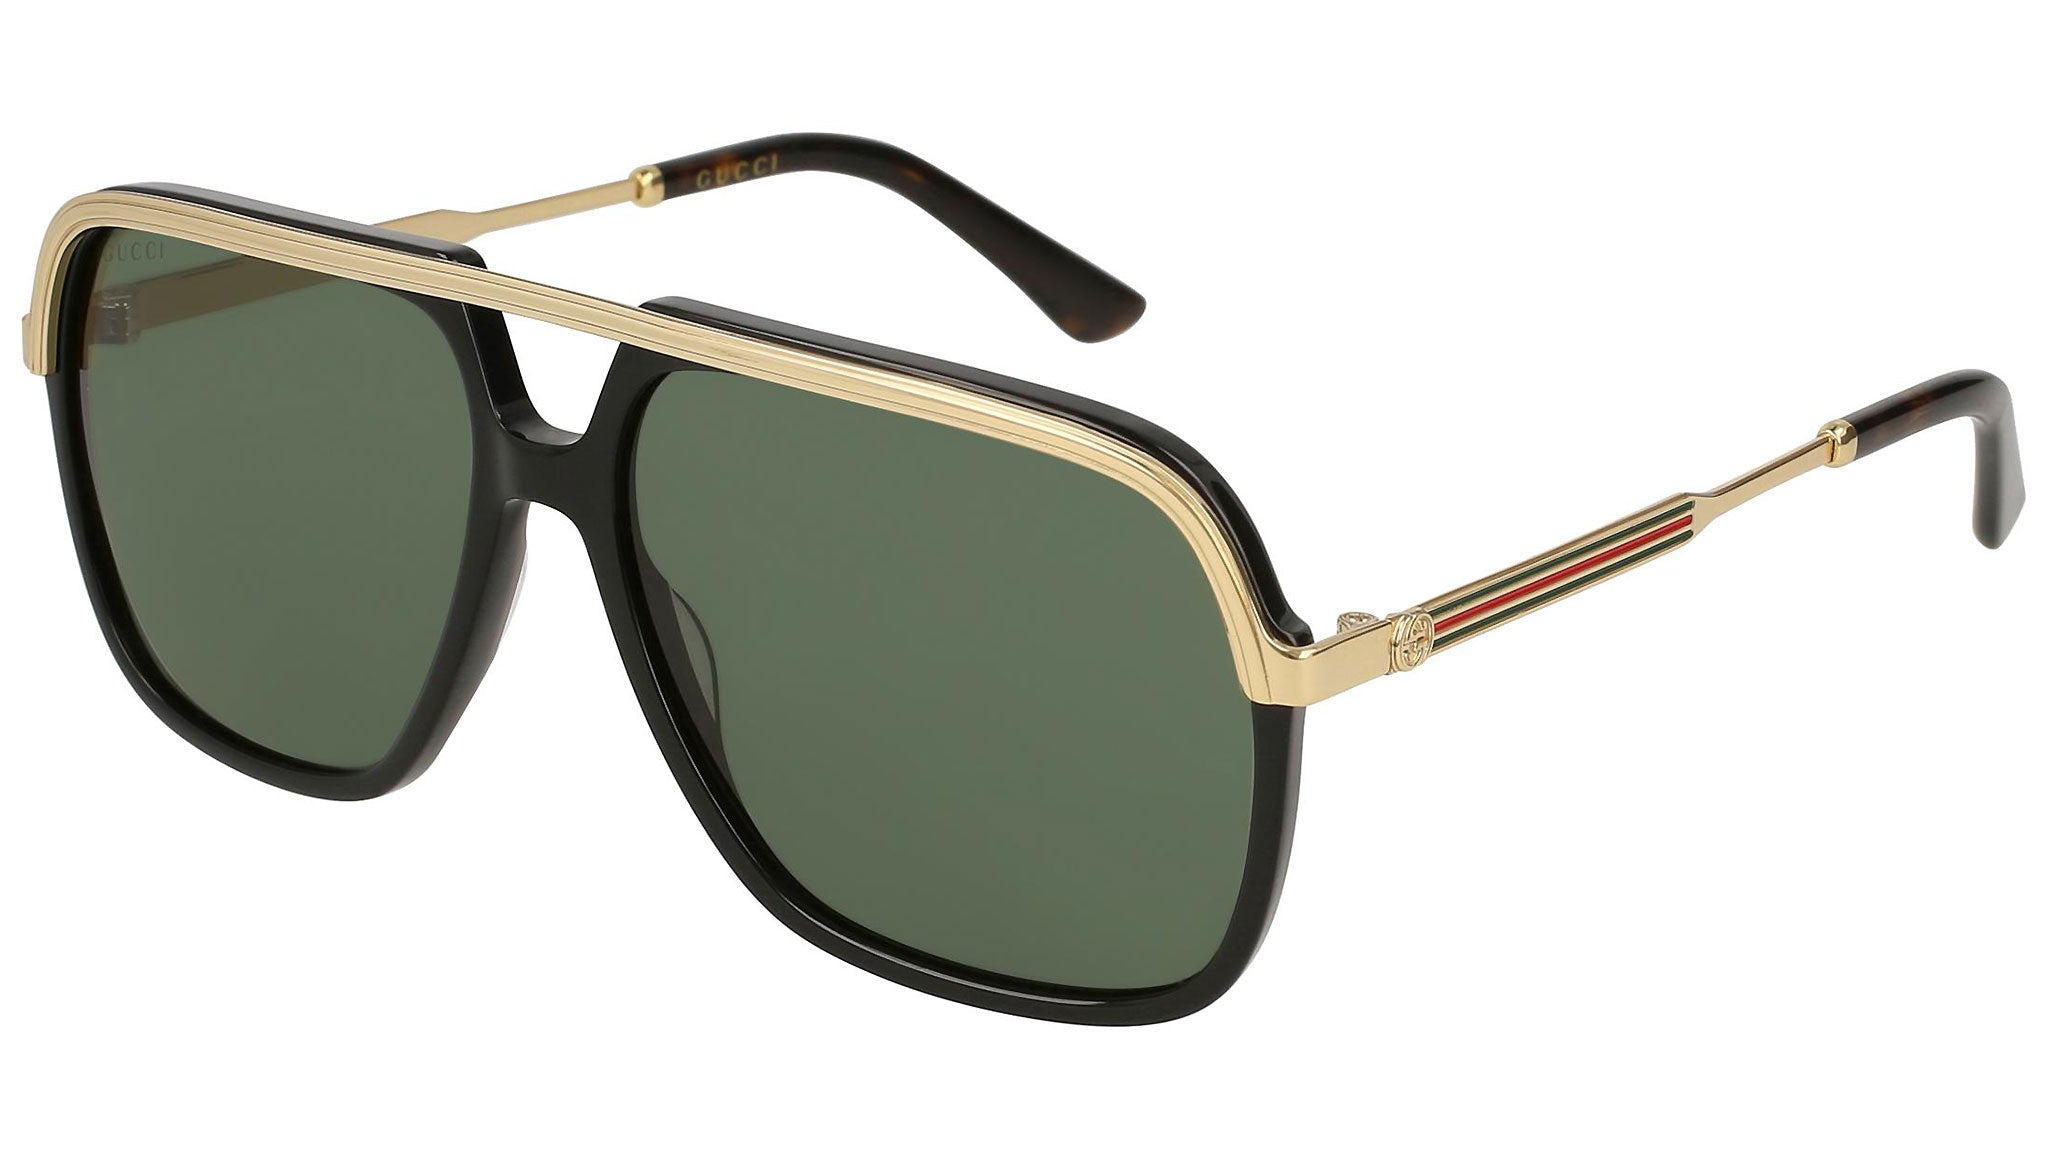 GG0200S gold black and green